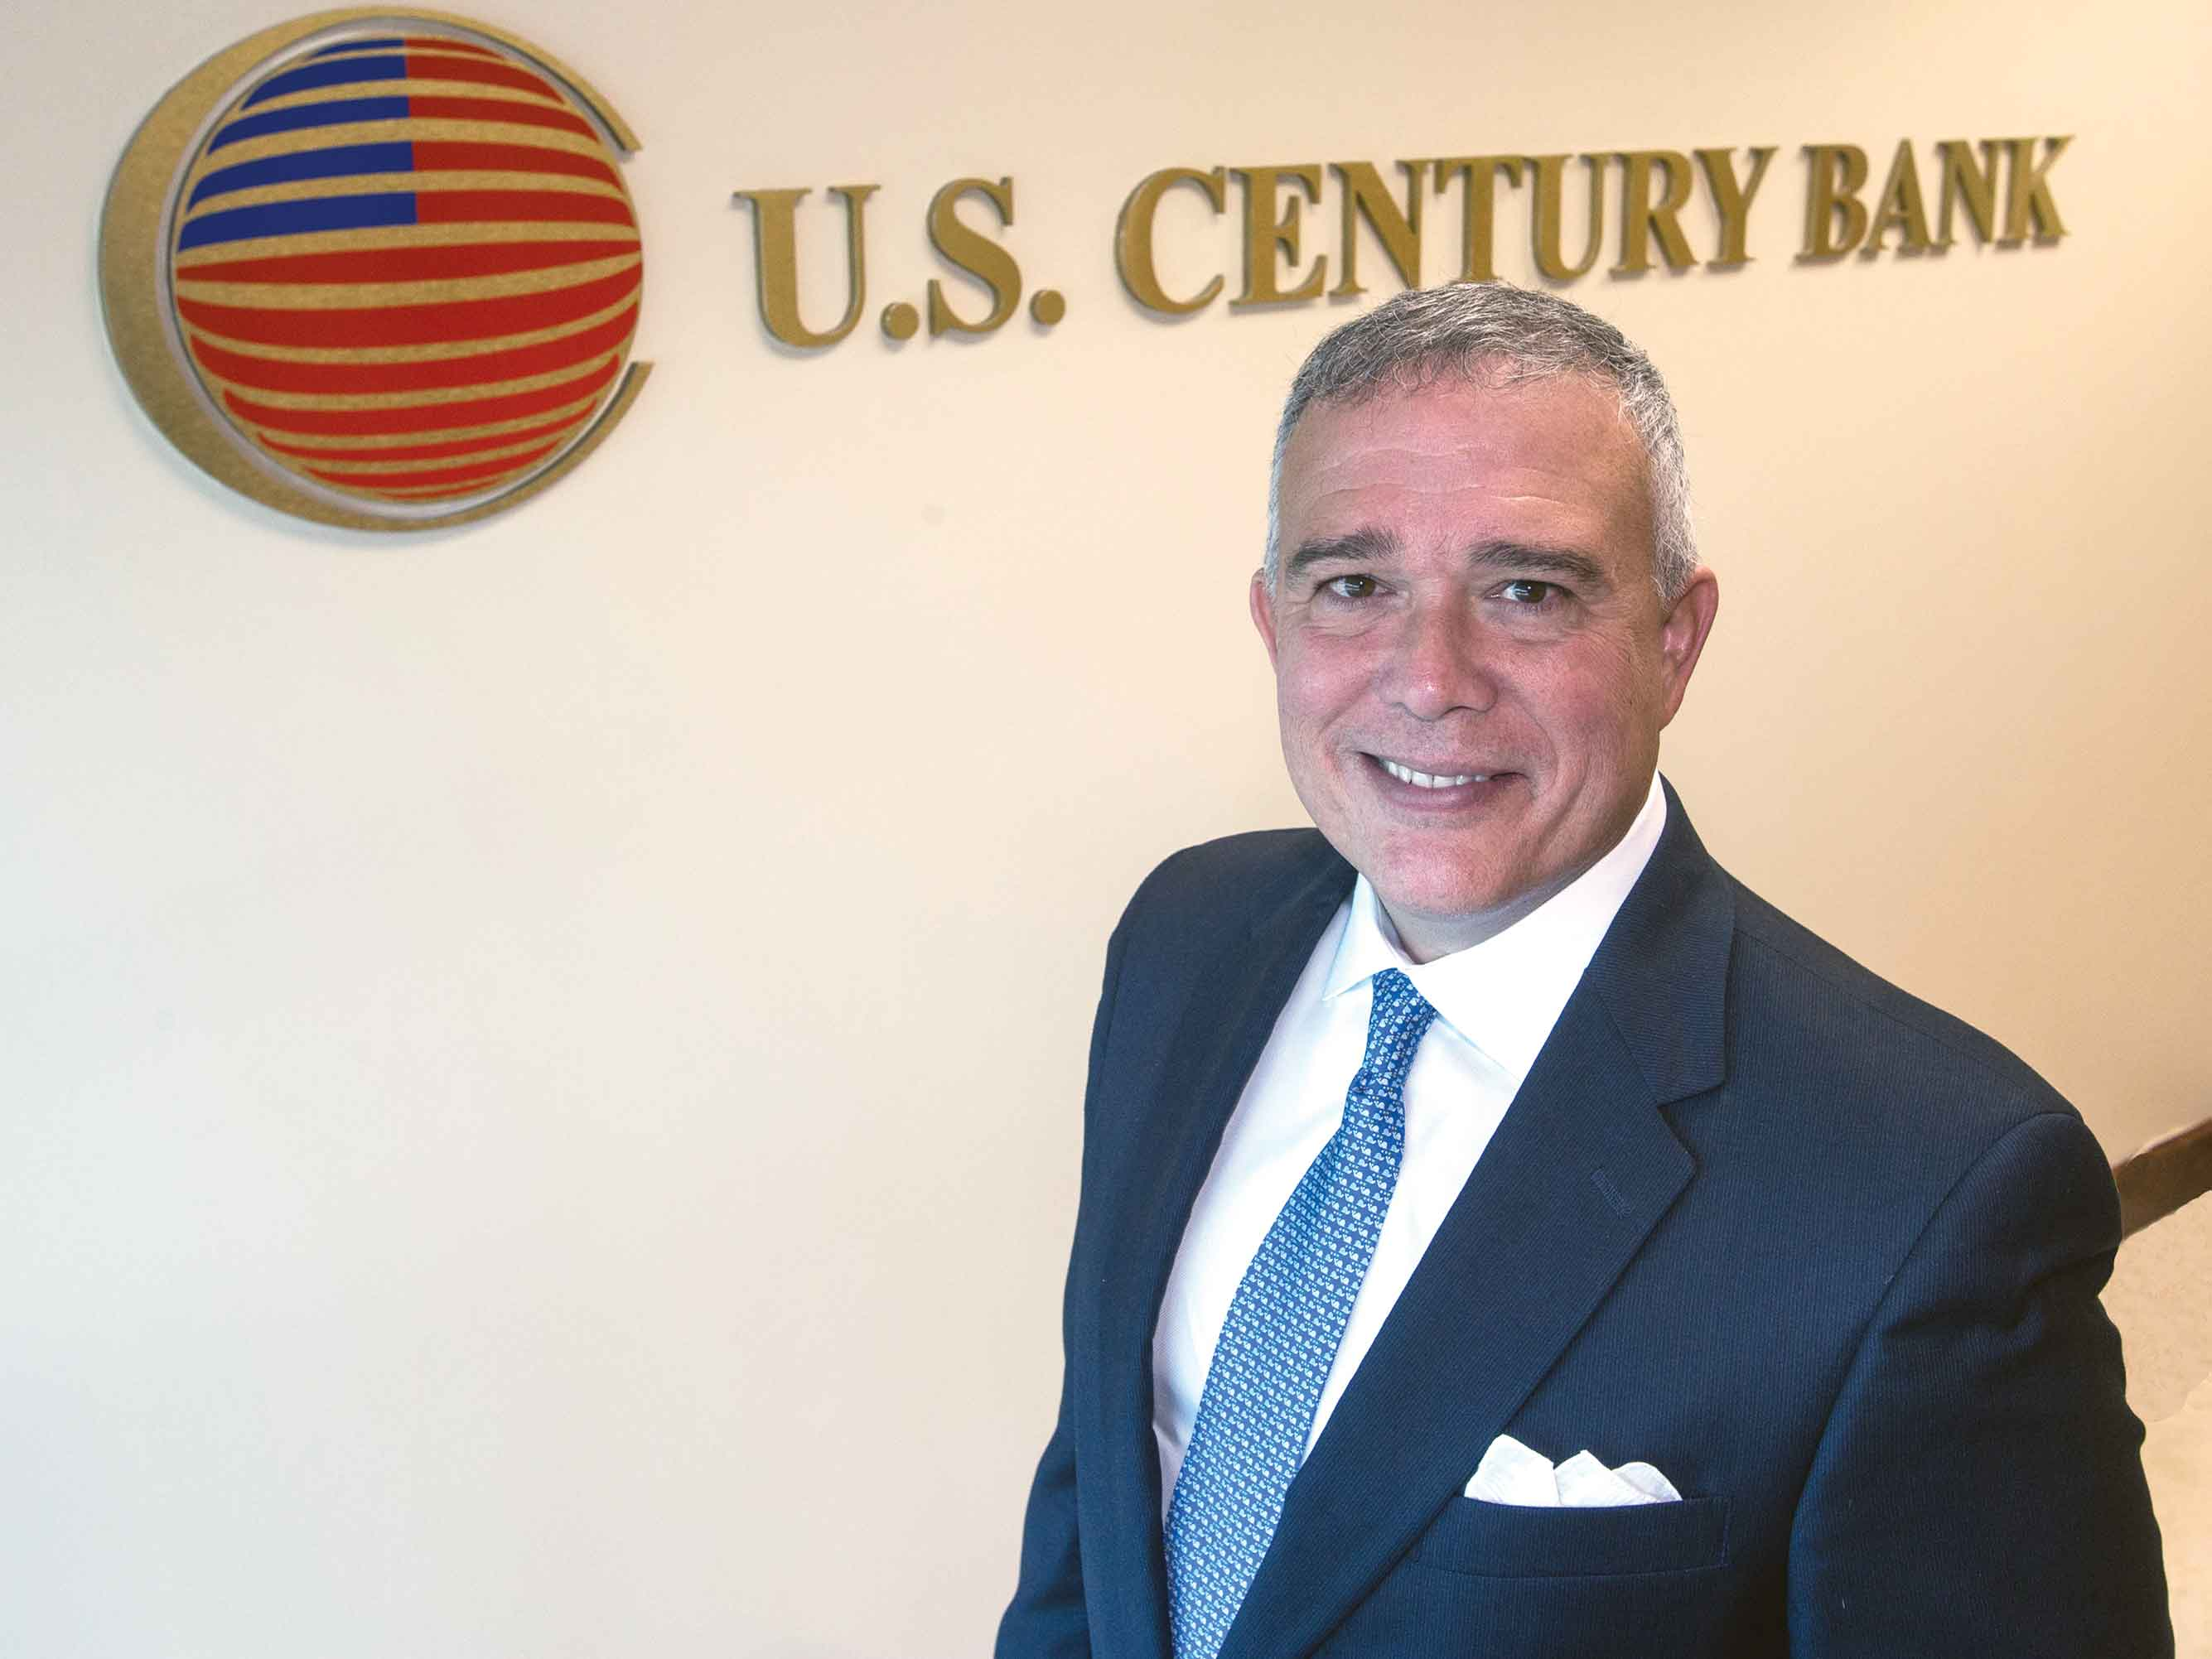 Luis de la Aguilera: President targets new markets for U.S. Century Bank